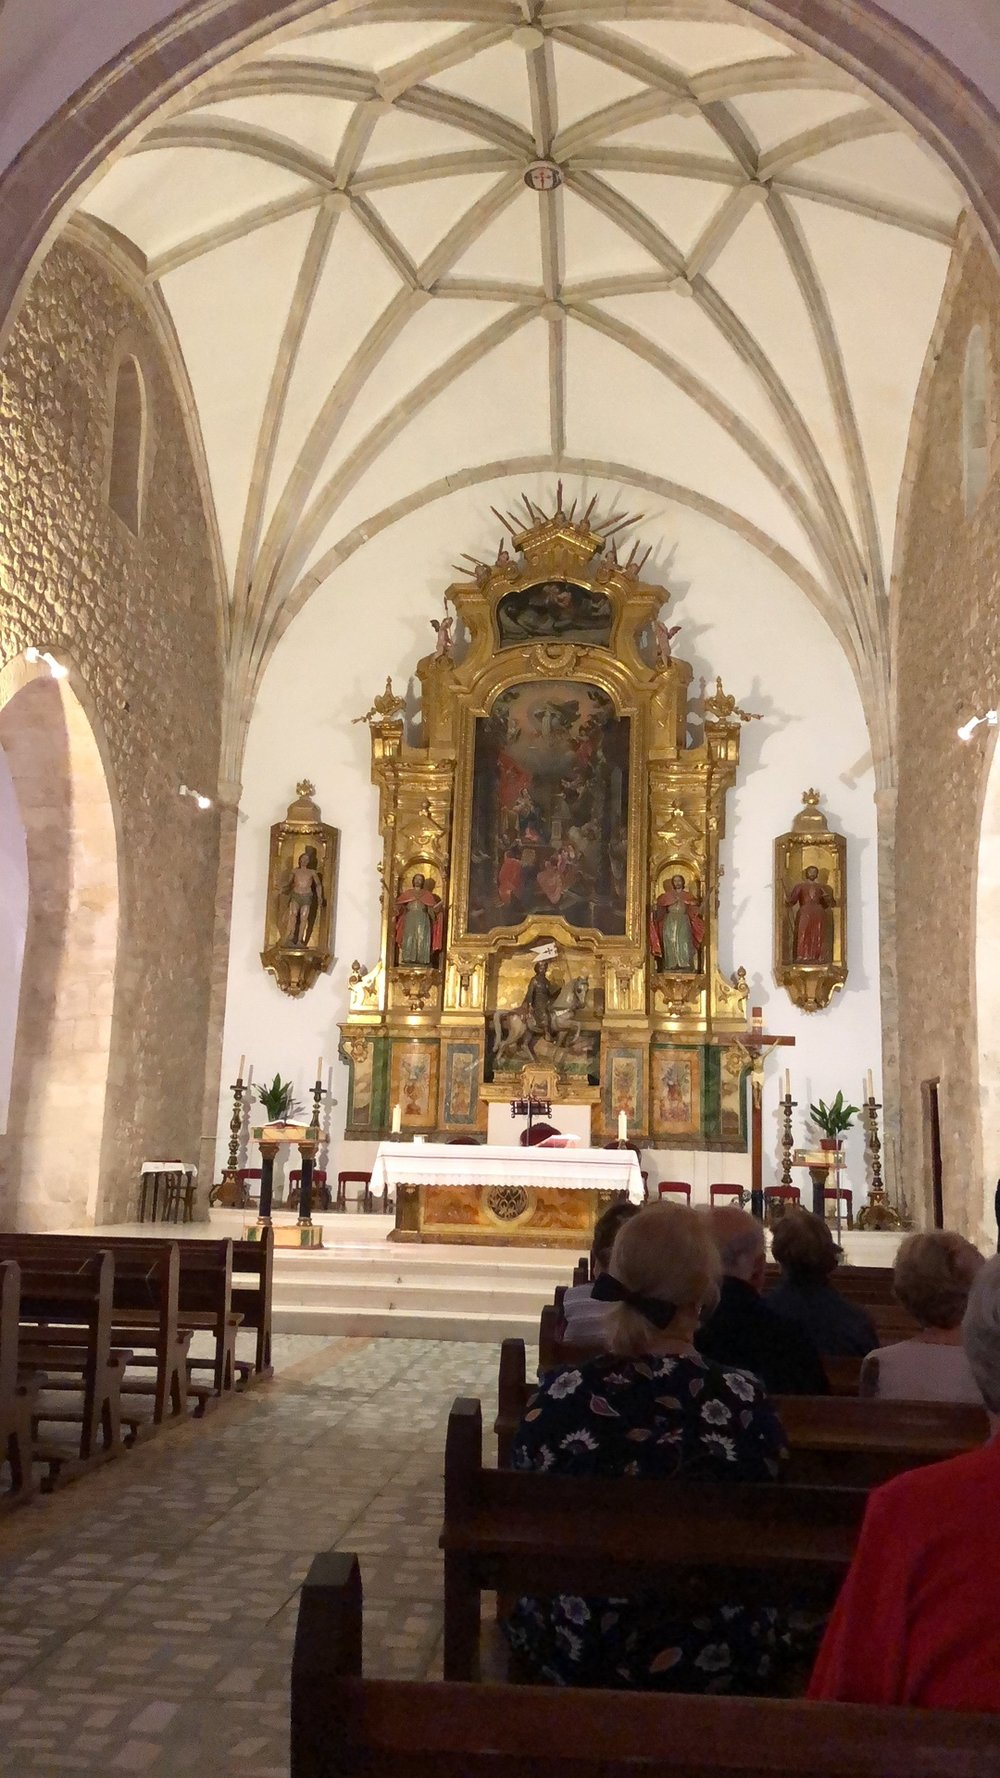 THE CHURCH OF SANTIAGO AND THE SWORD